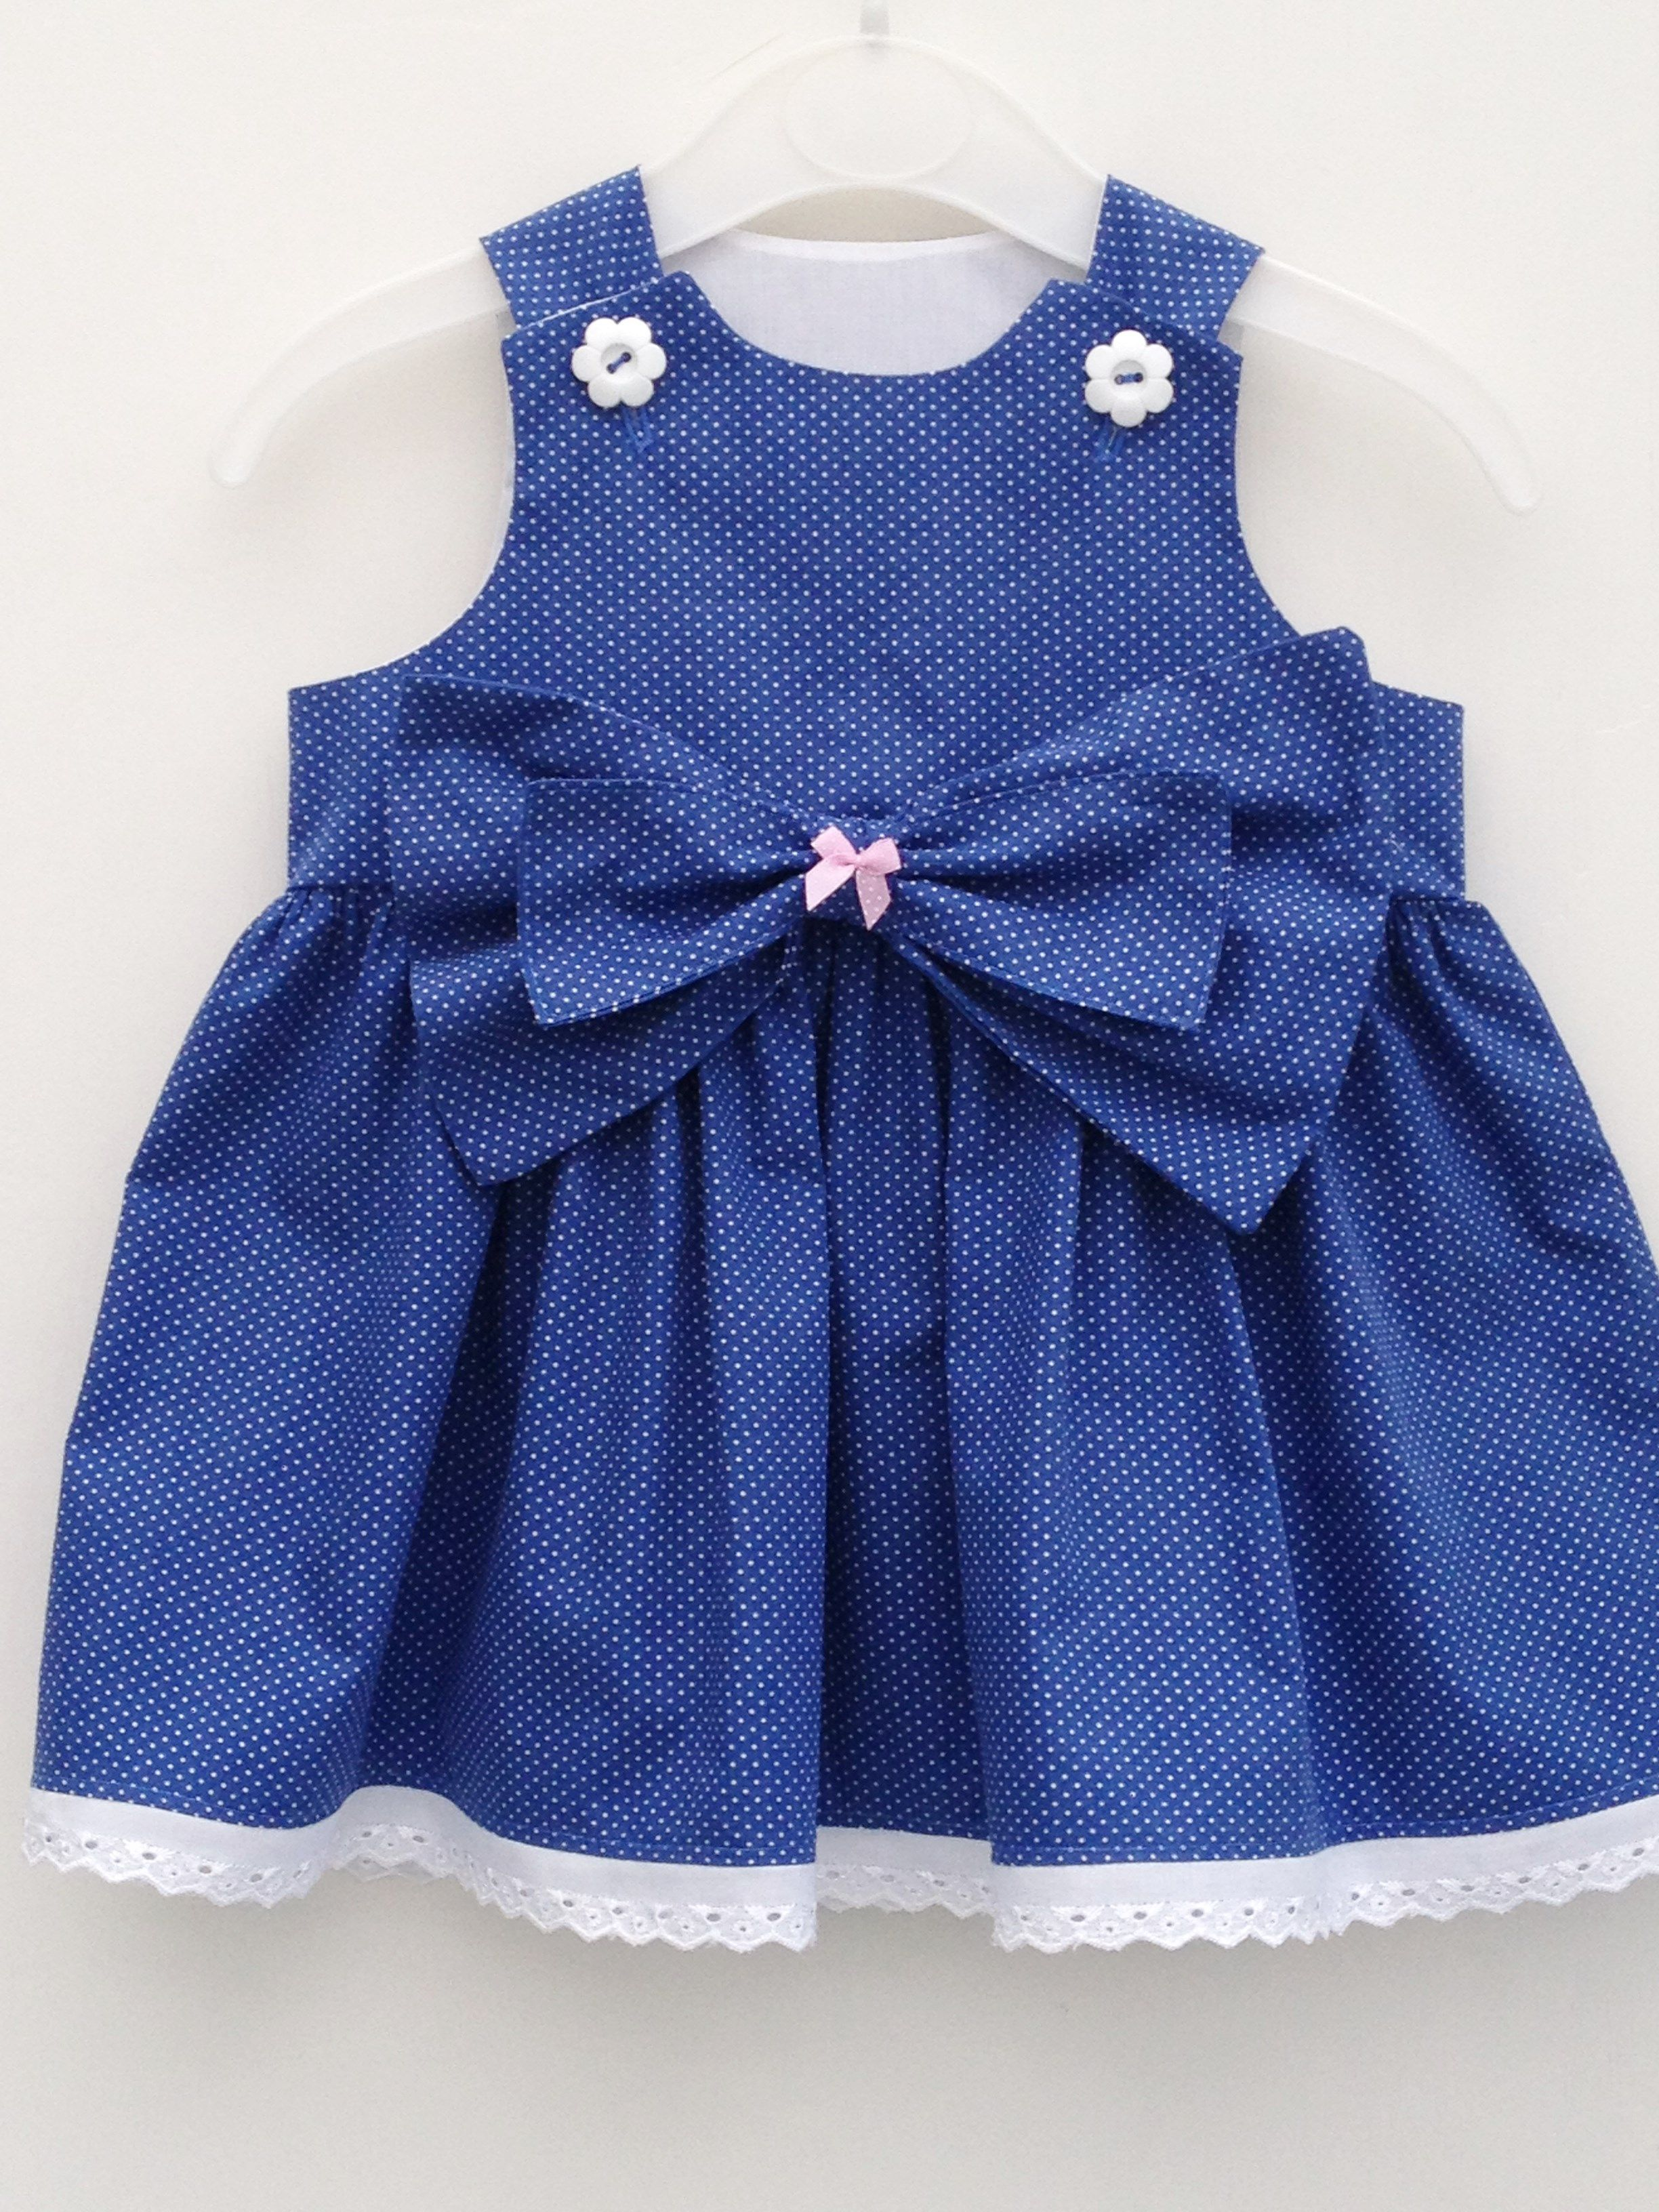 865537256ec Handmade polka dot baby girl party dress size 3-6 months